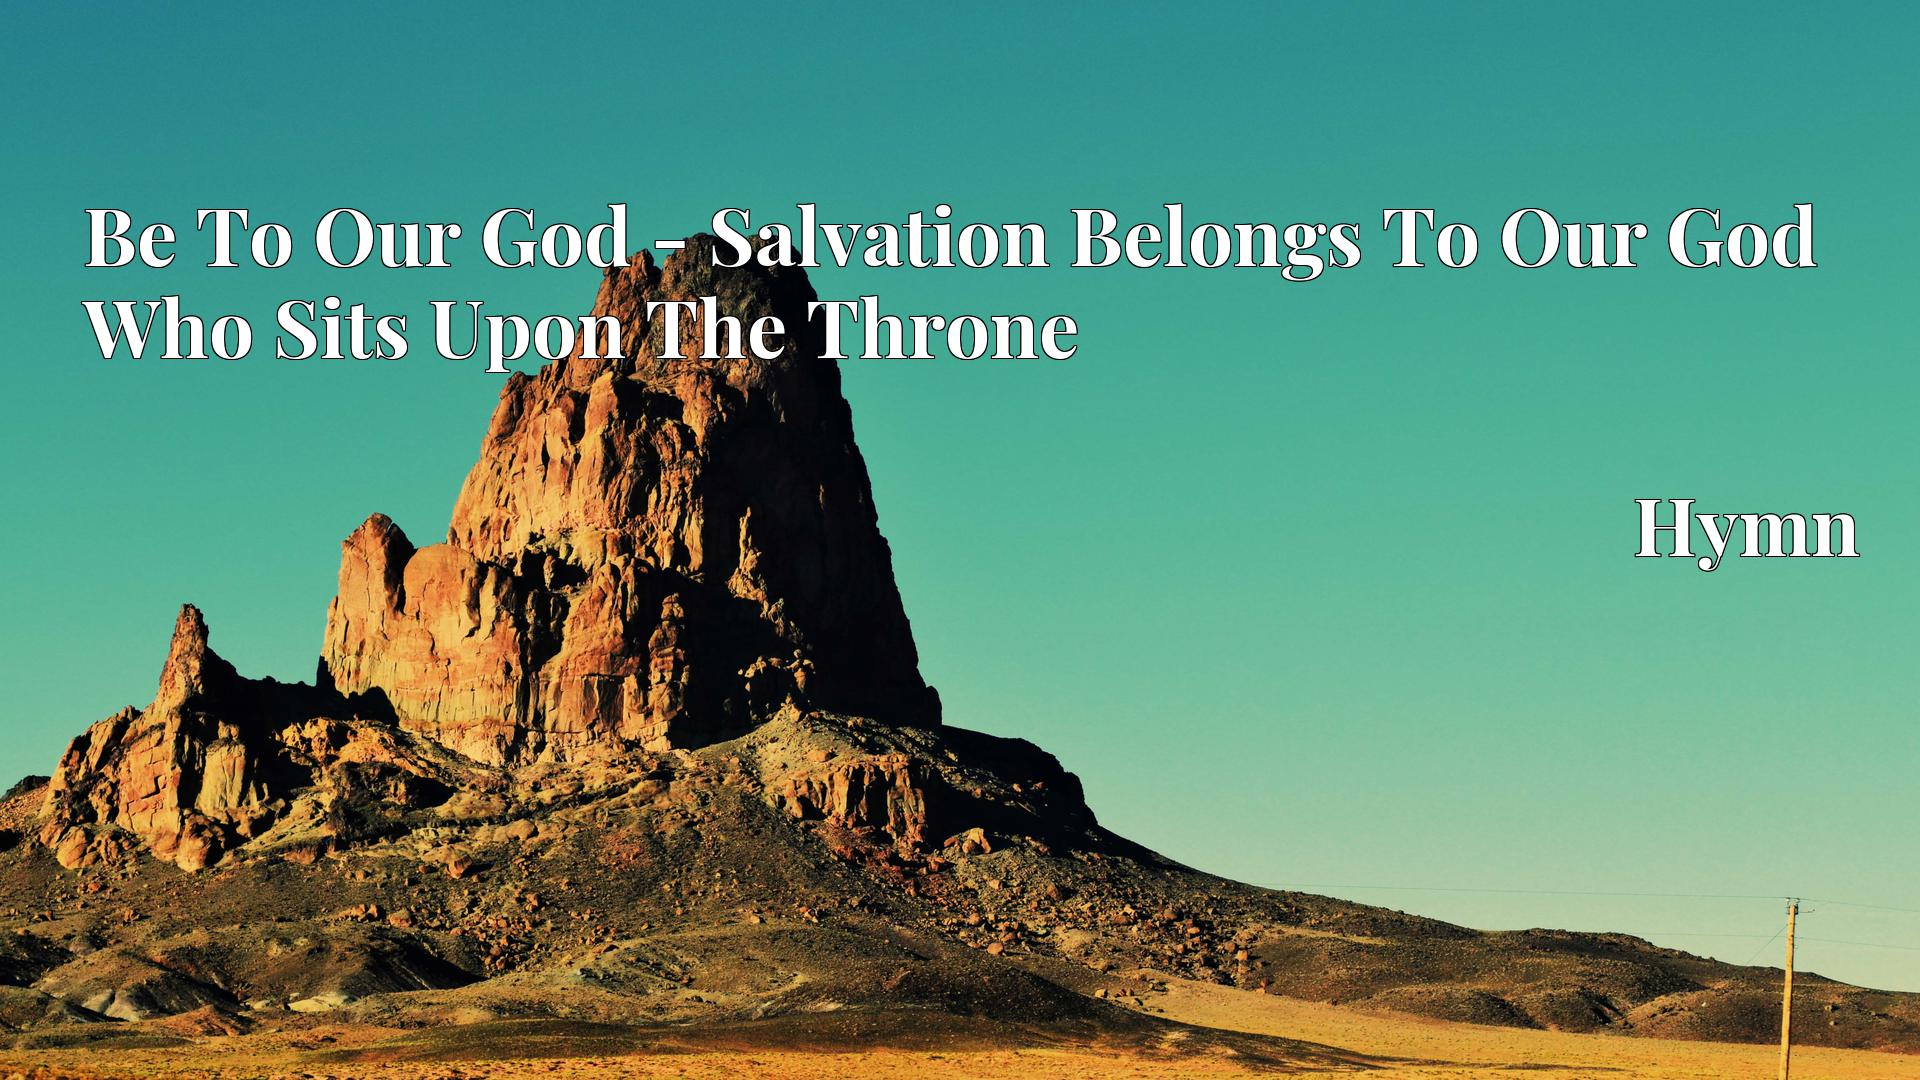 Be To Our God - Salvation Belongs To Our God Who Sits Upon The Throne Hymn